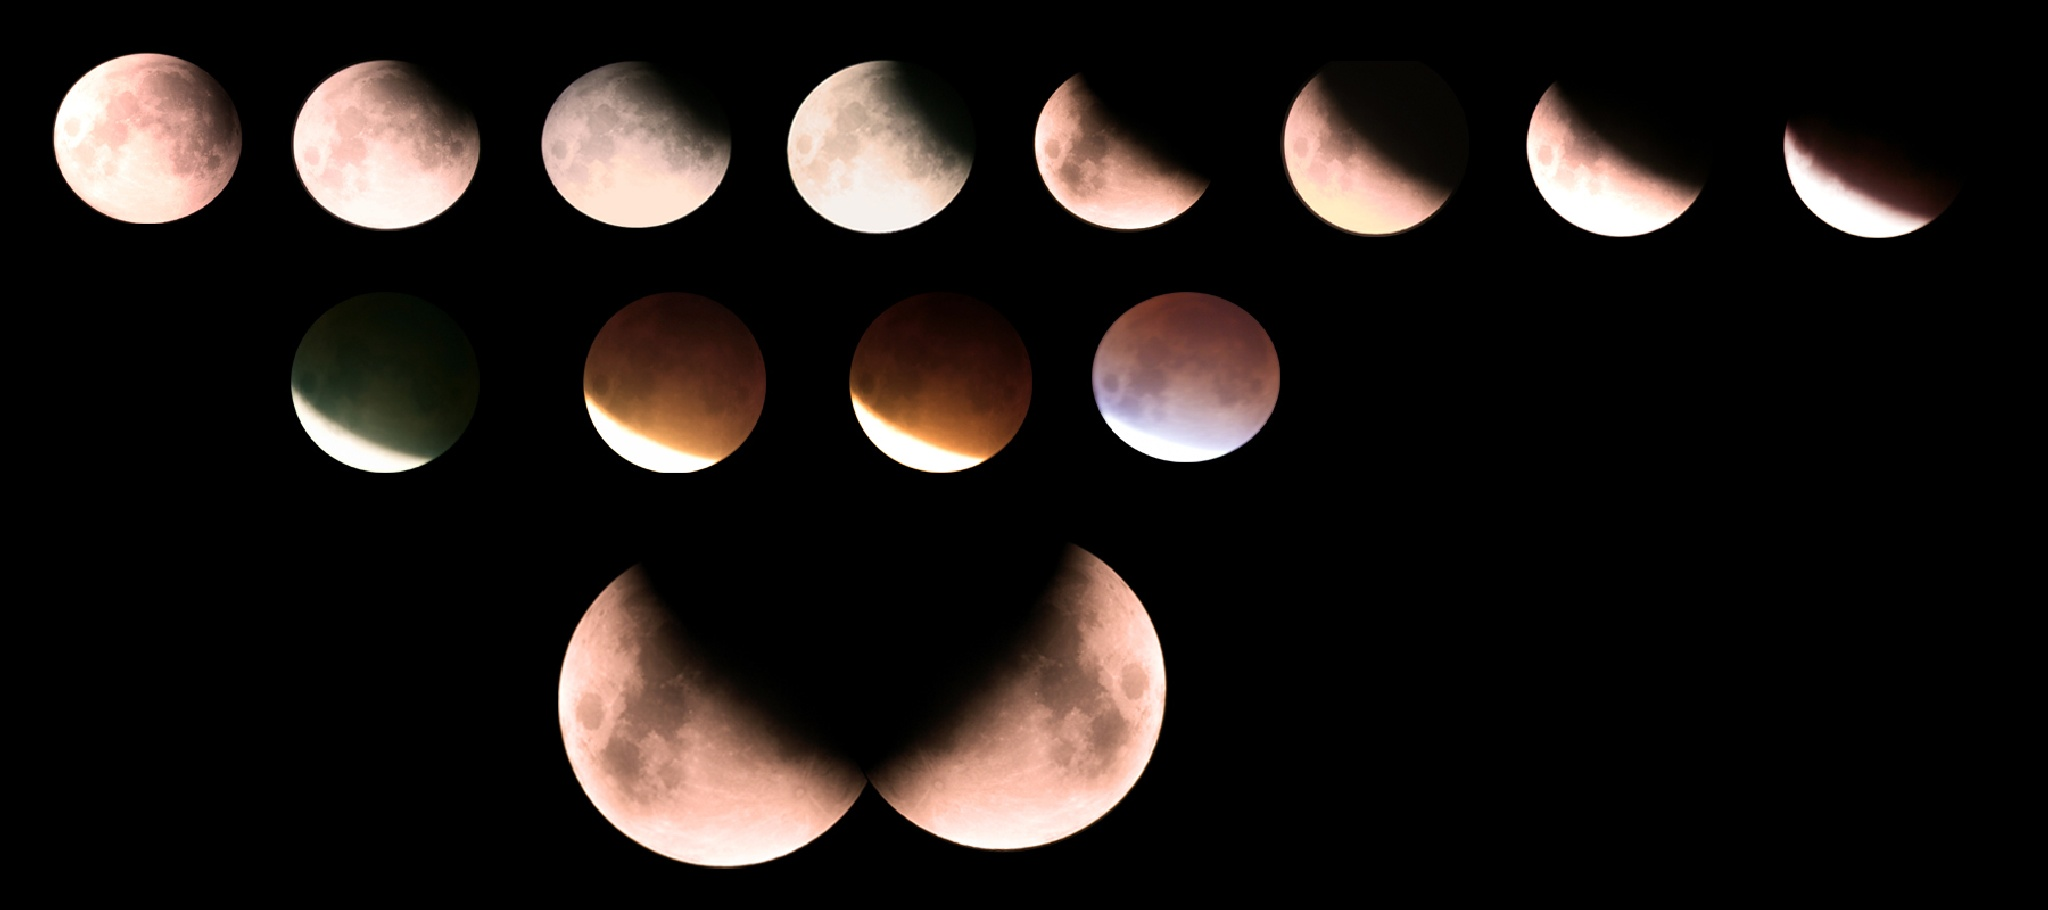 Total Moon Eclipse 2012 by Mircea Simion